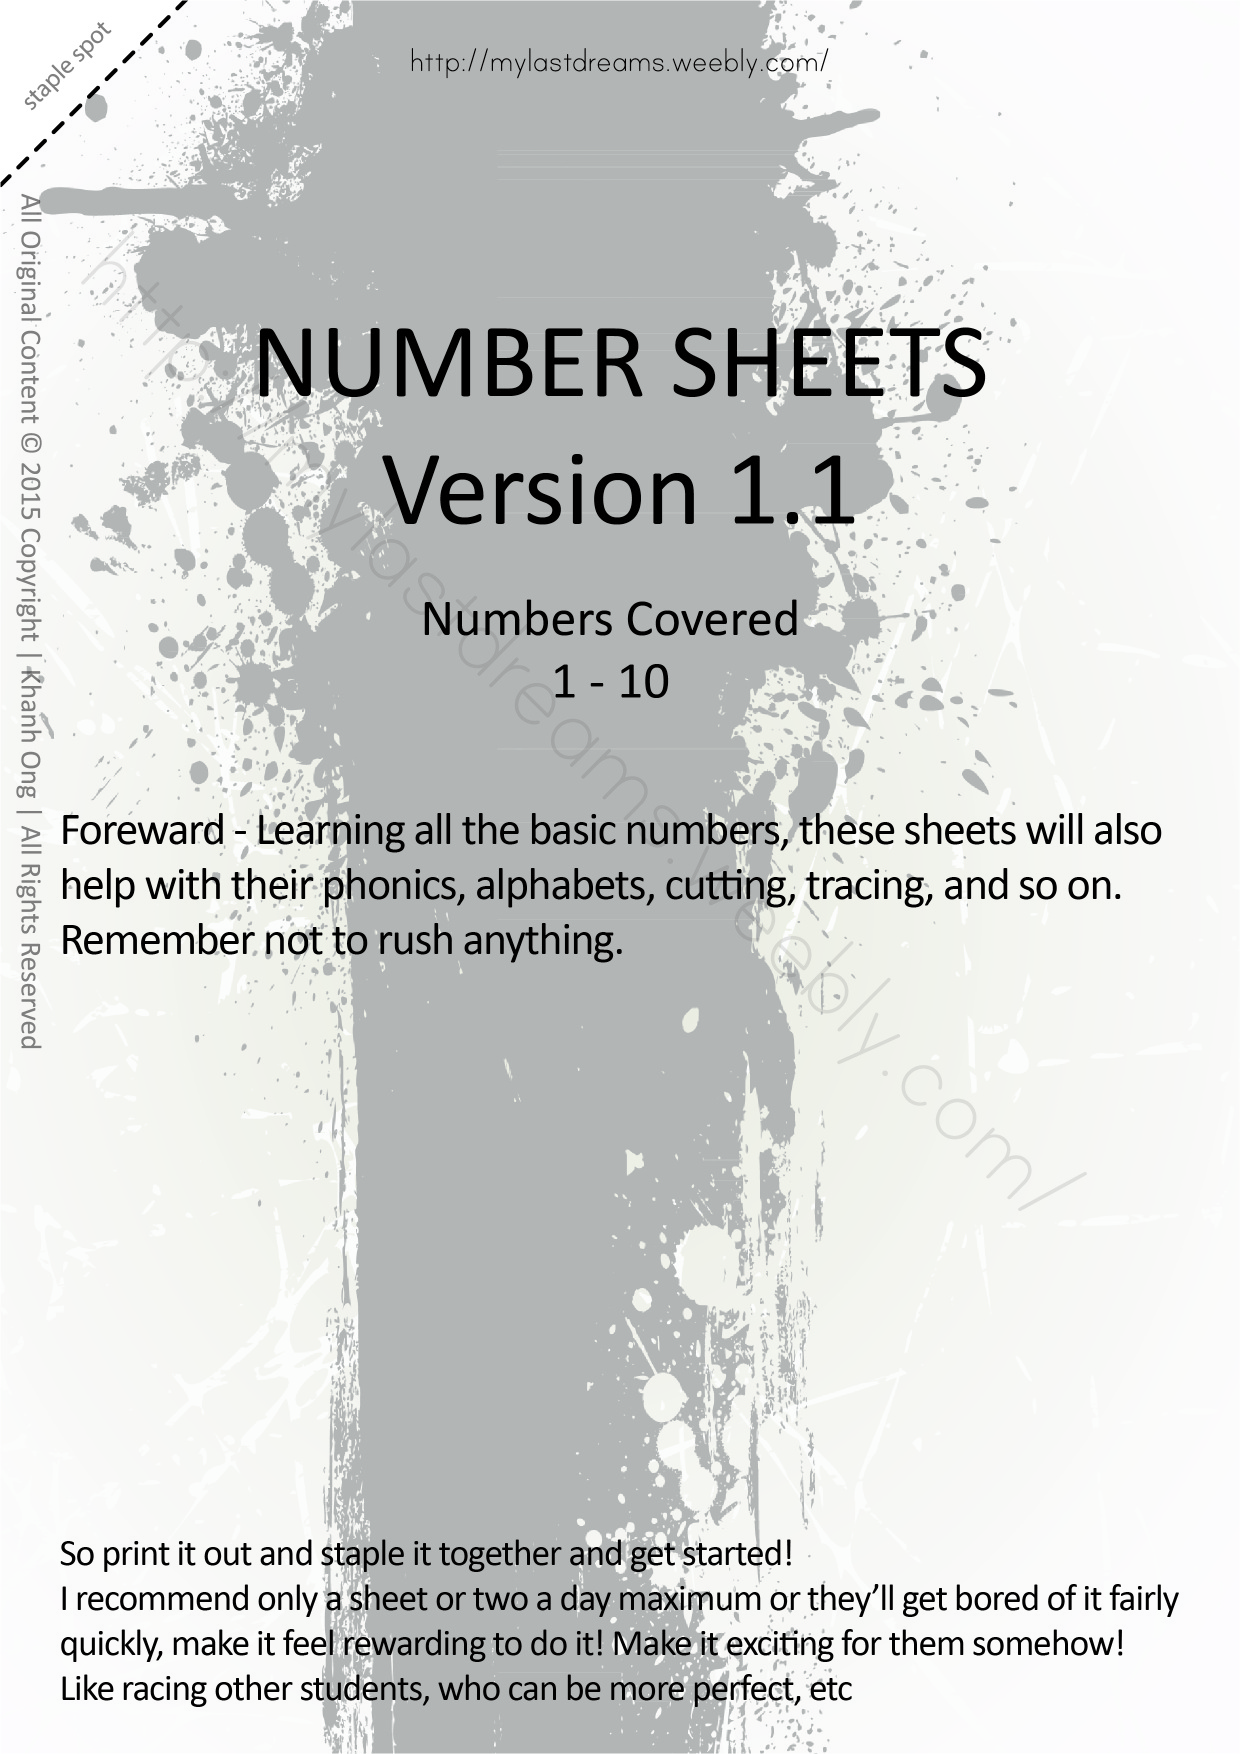 MLD - Basic Numbers Worksheets - Full Set - A4 Sized